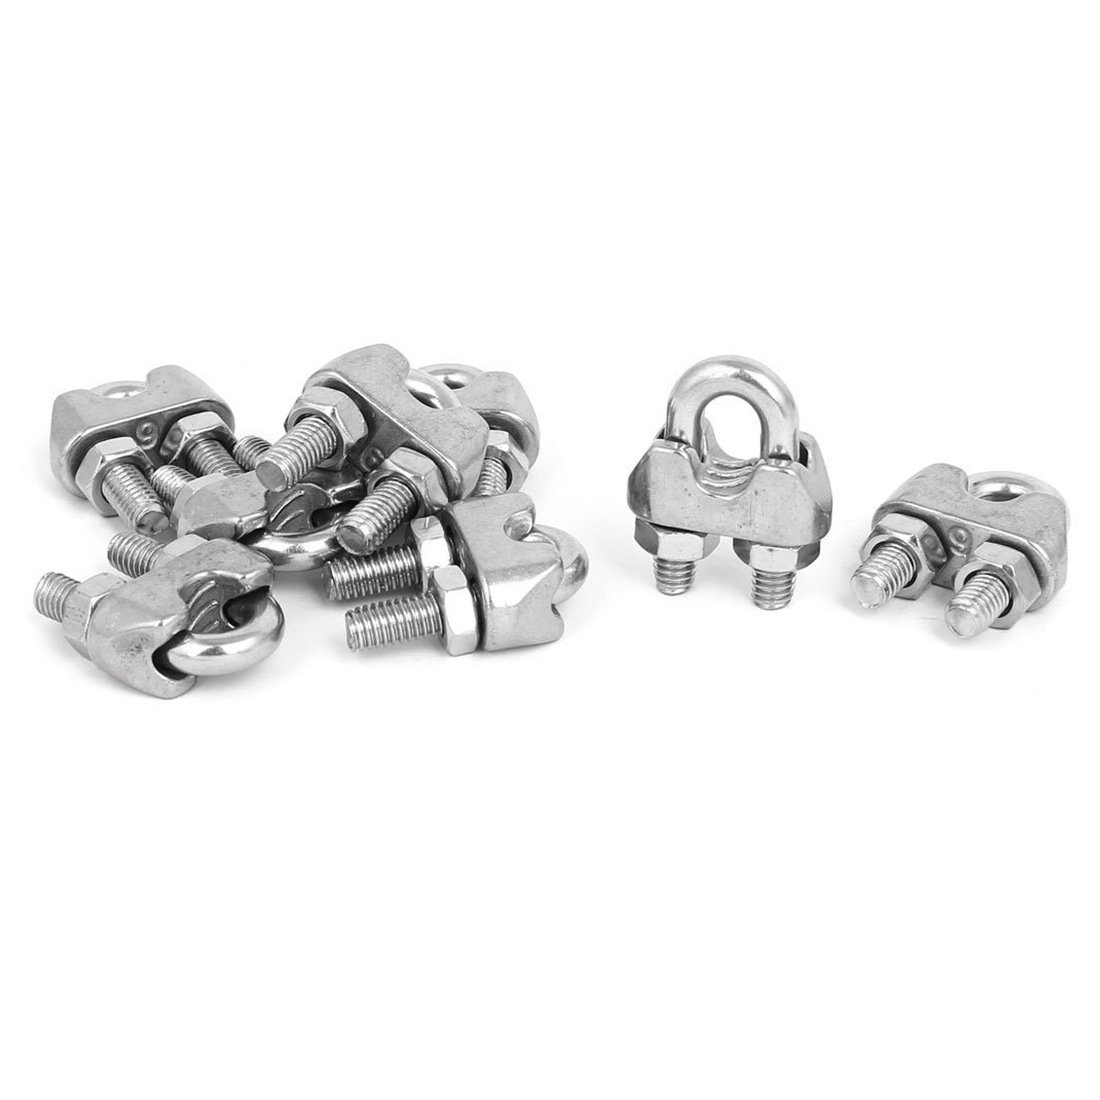 Diplomatic M6 1/4 Inch 304 Stainless Steel U-shape Bolt Saddle Clamps Cable Wire Rope Clips 8 Pcs